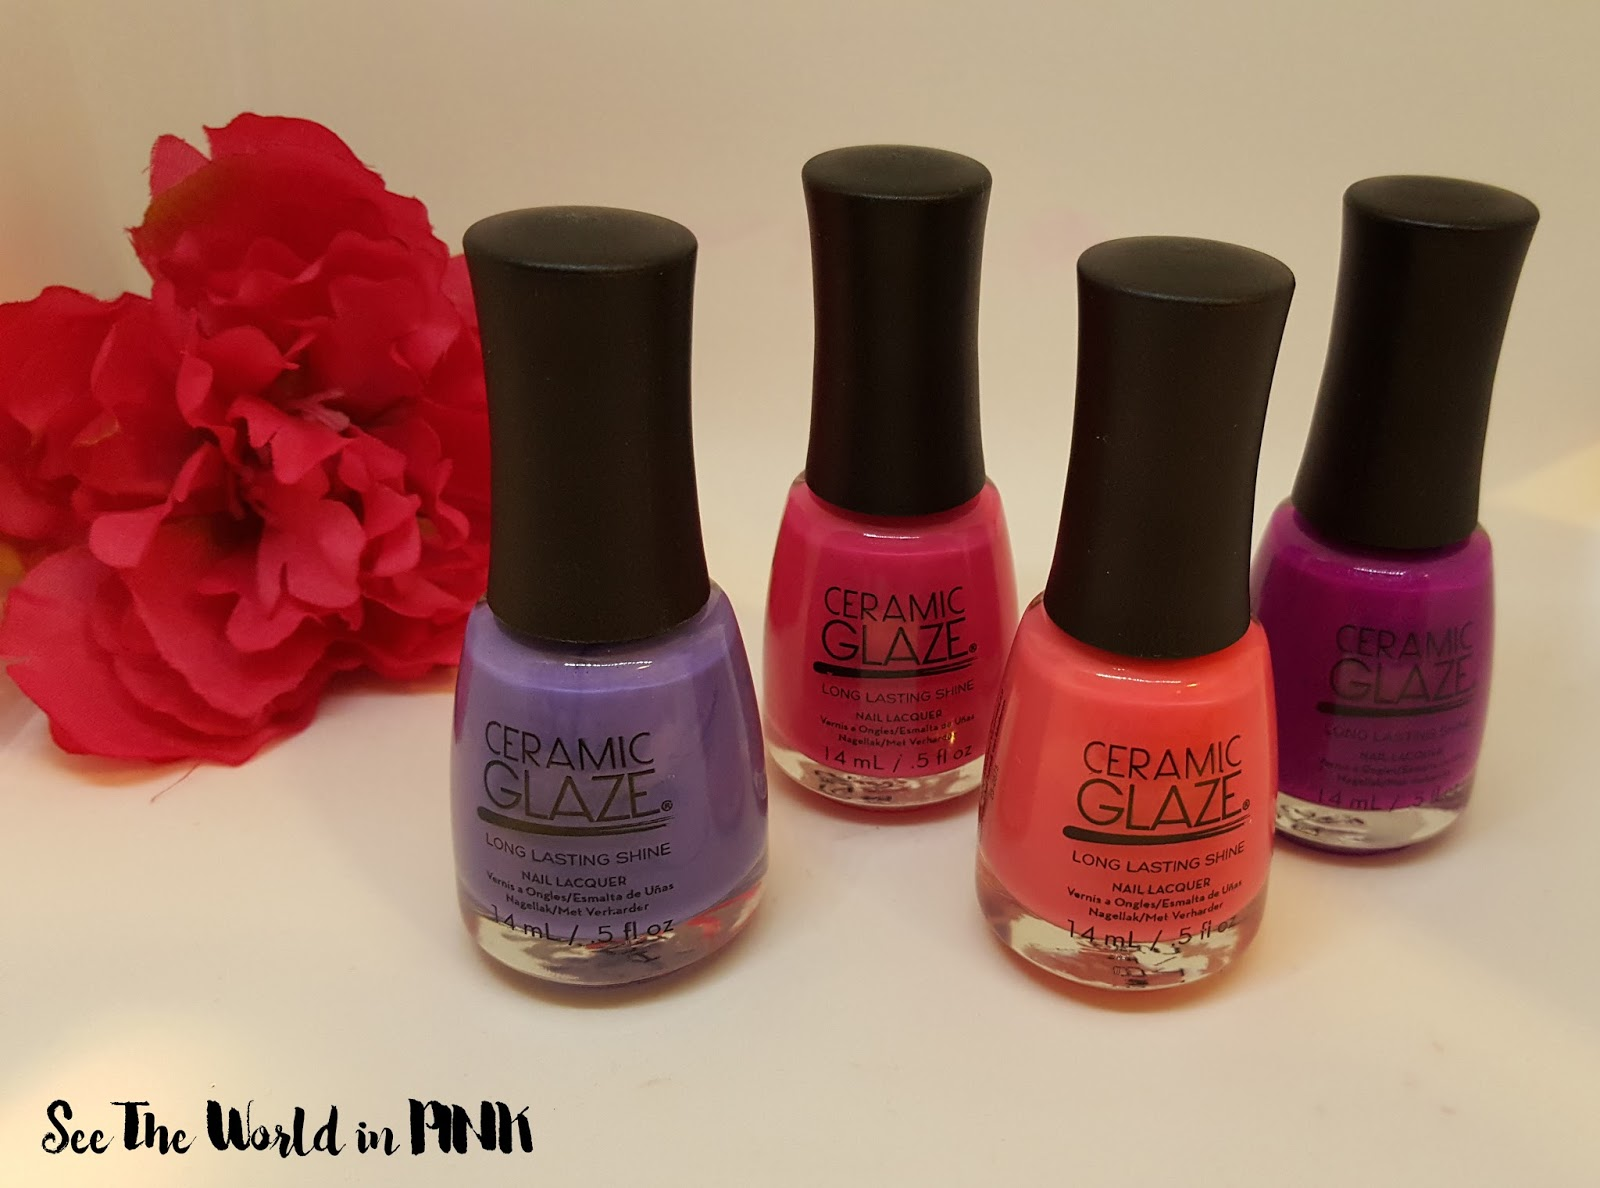 Ceramic Glaze Limited Edition Botanical Oasis Collection Swatches and Reviews